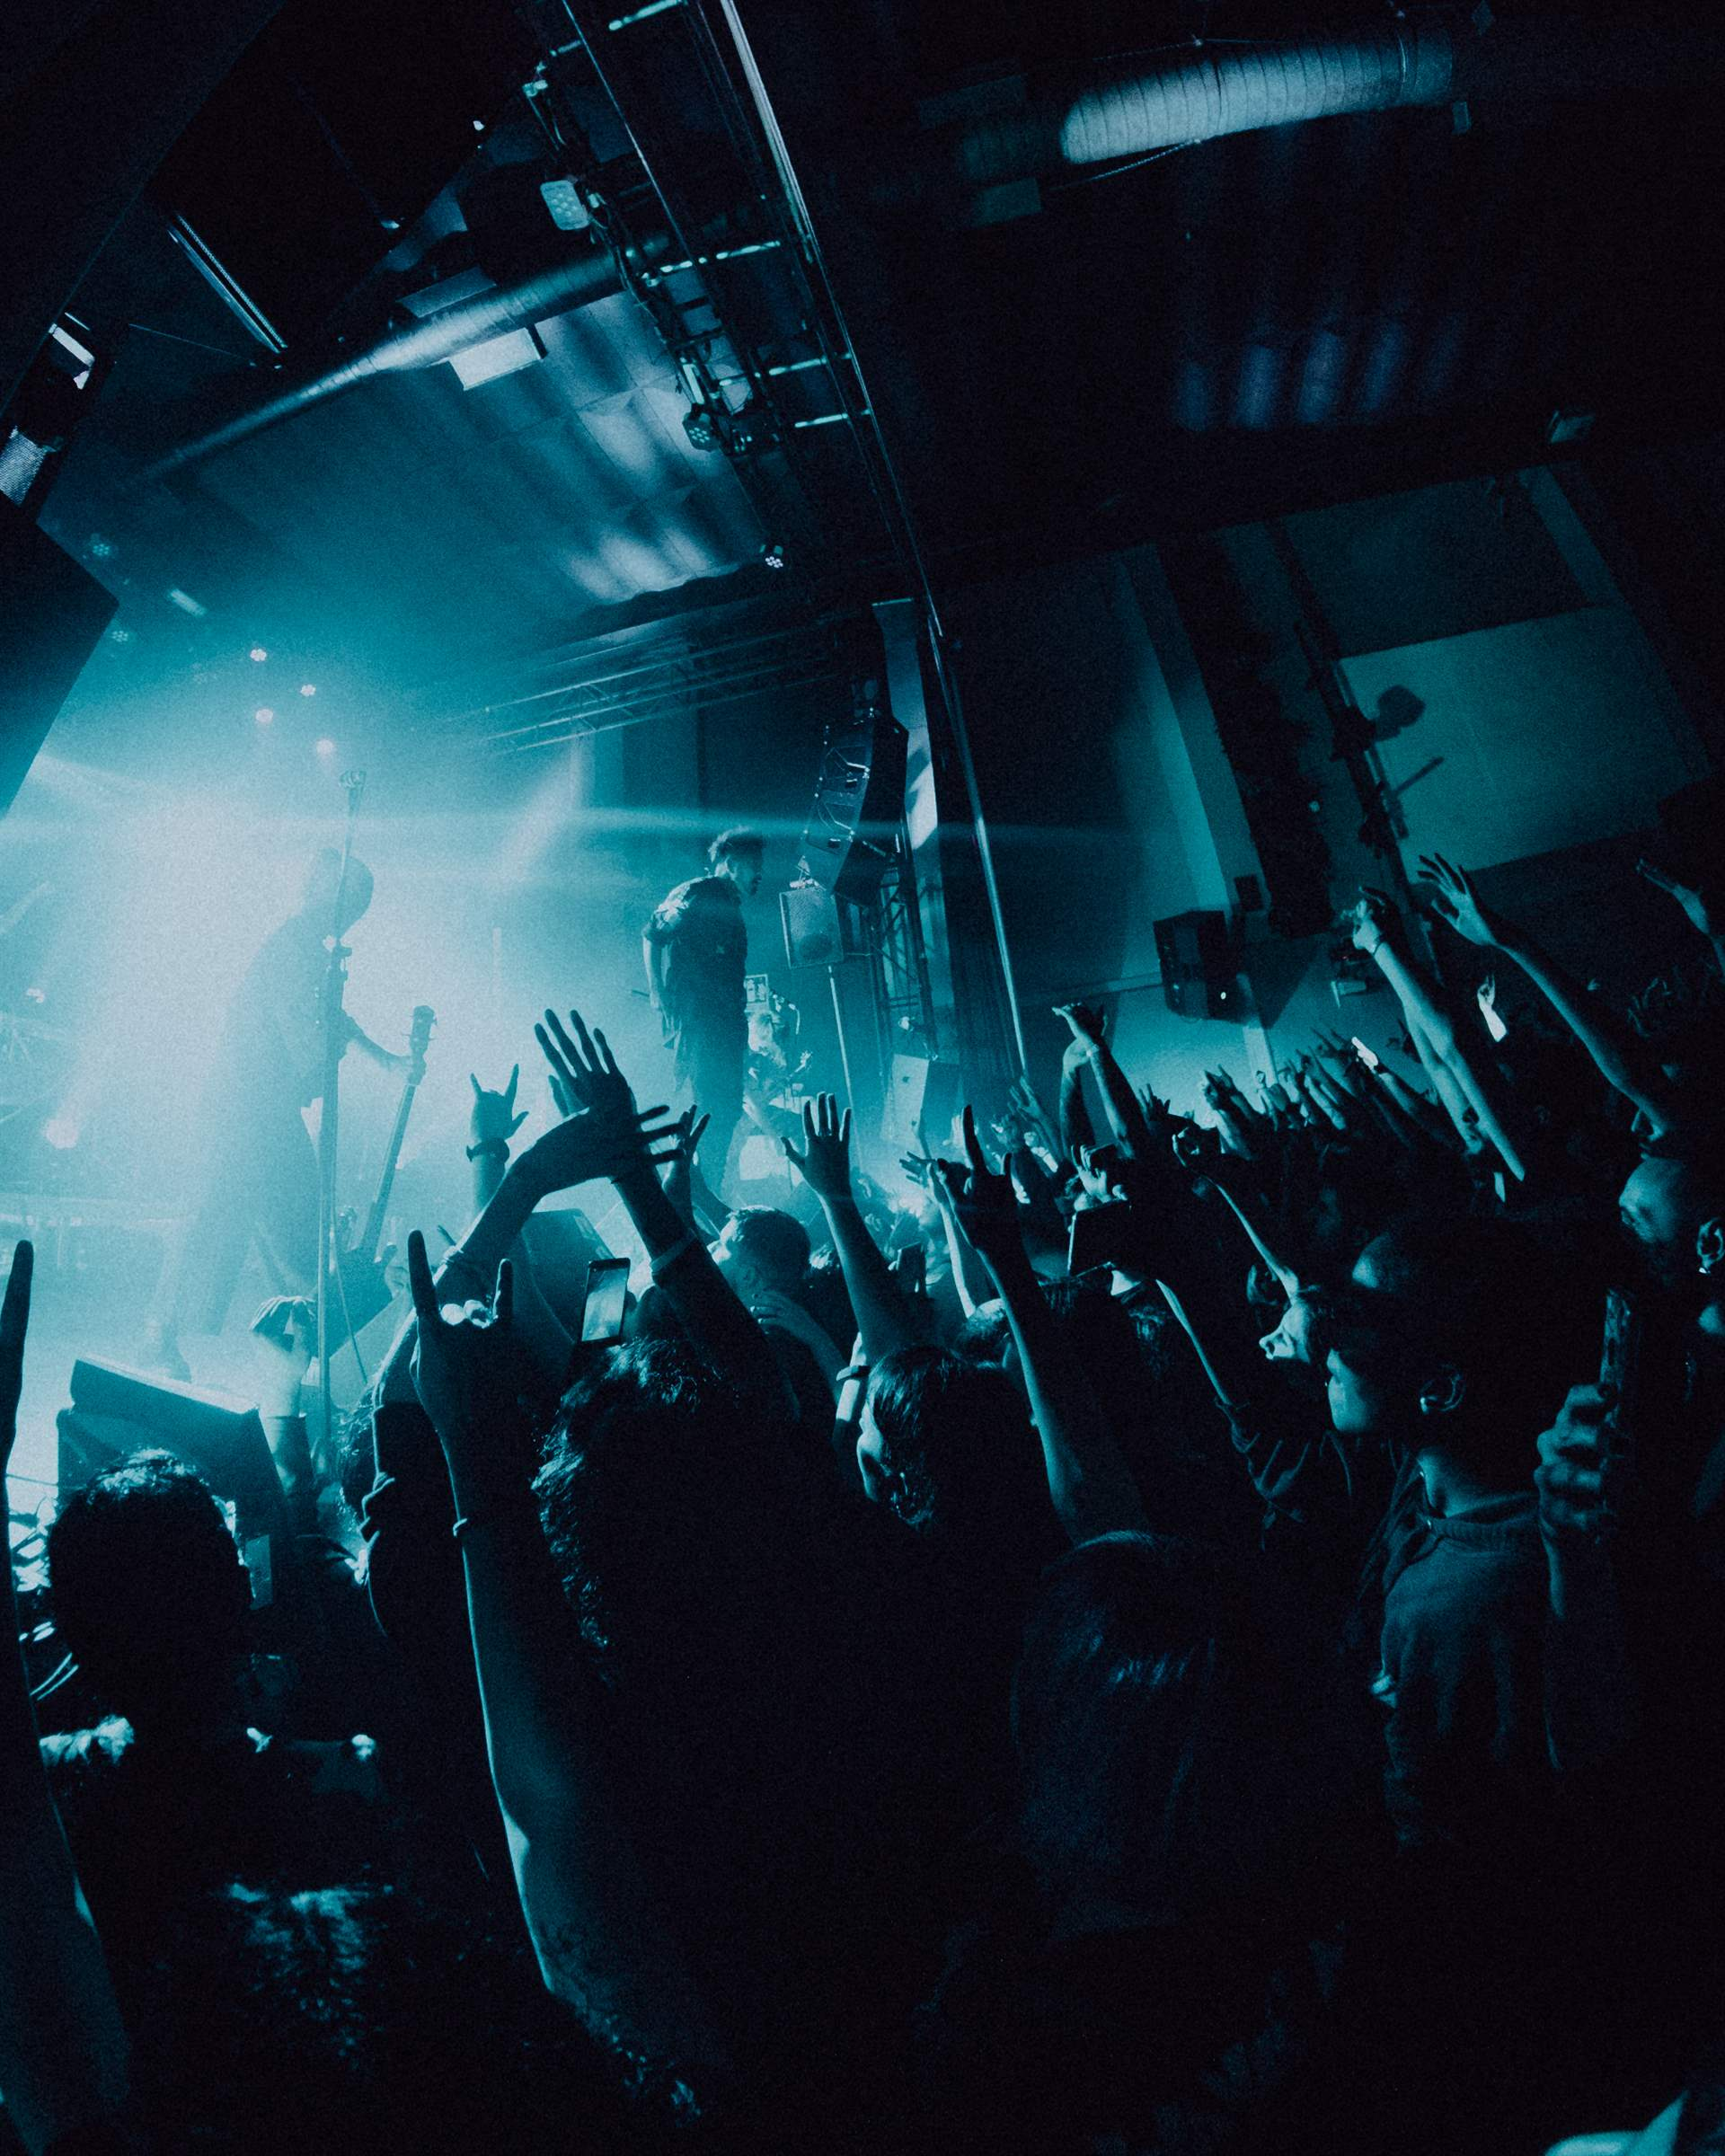 crossfaith @ o2 islington, london 2020